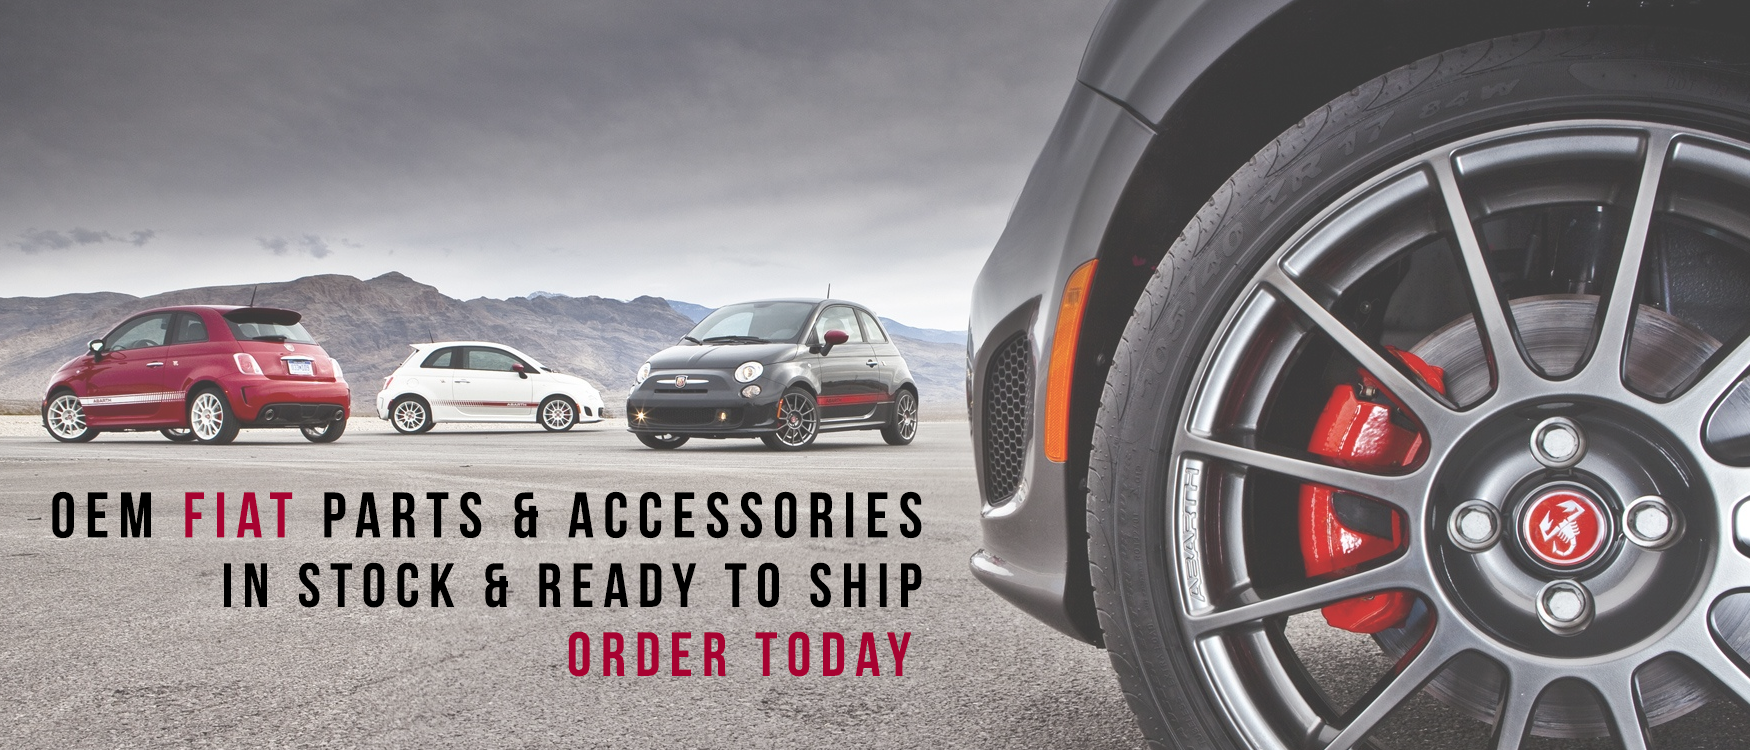 fiat automotive parts home page slider